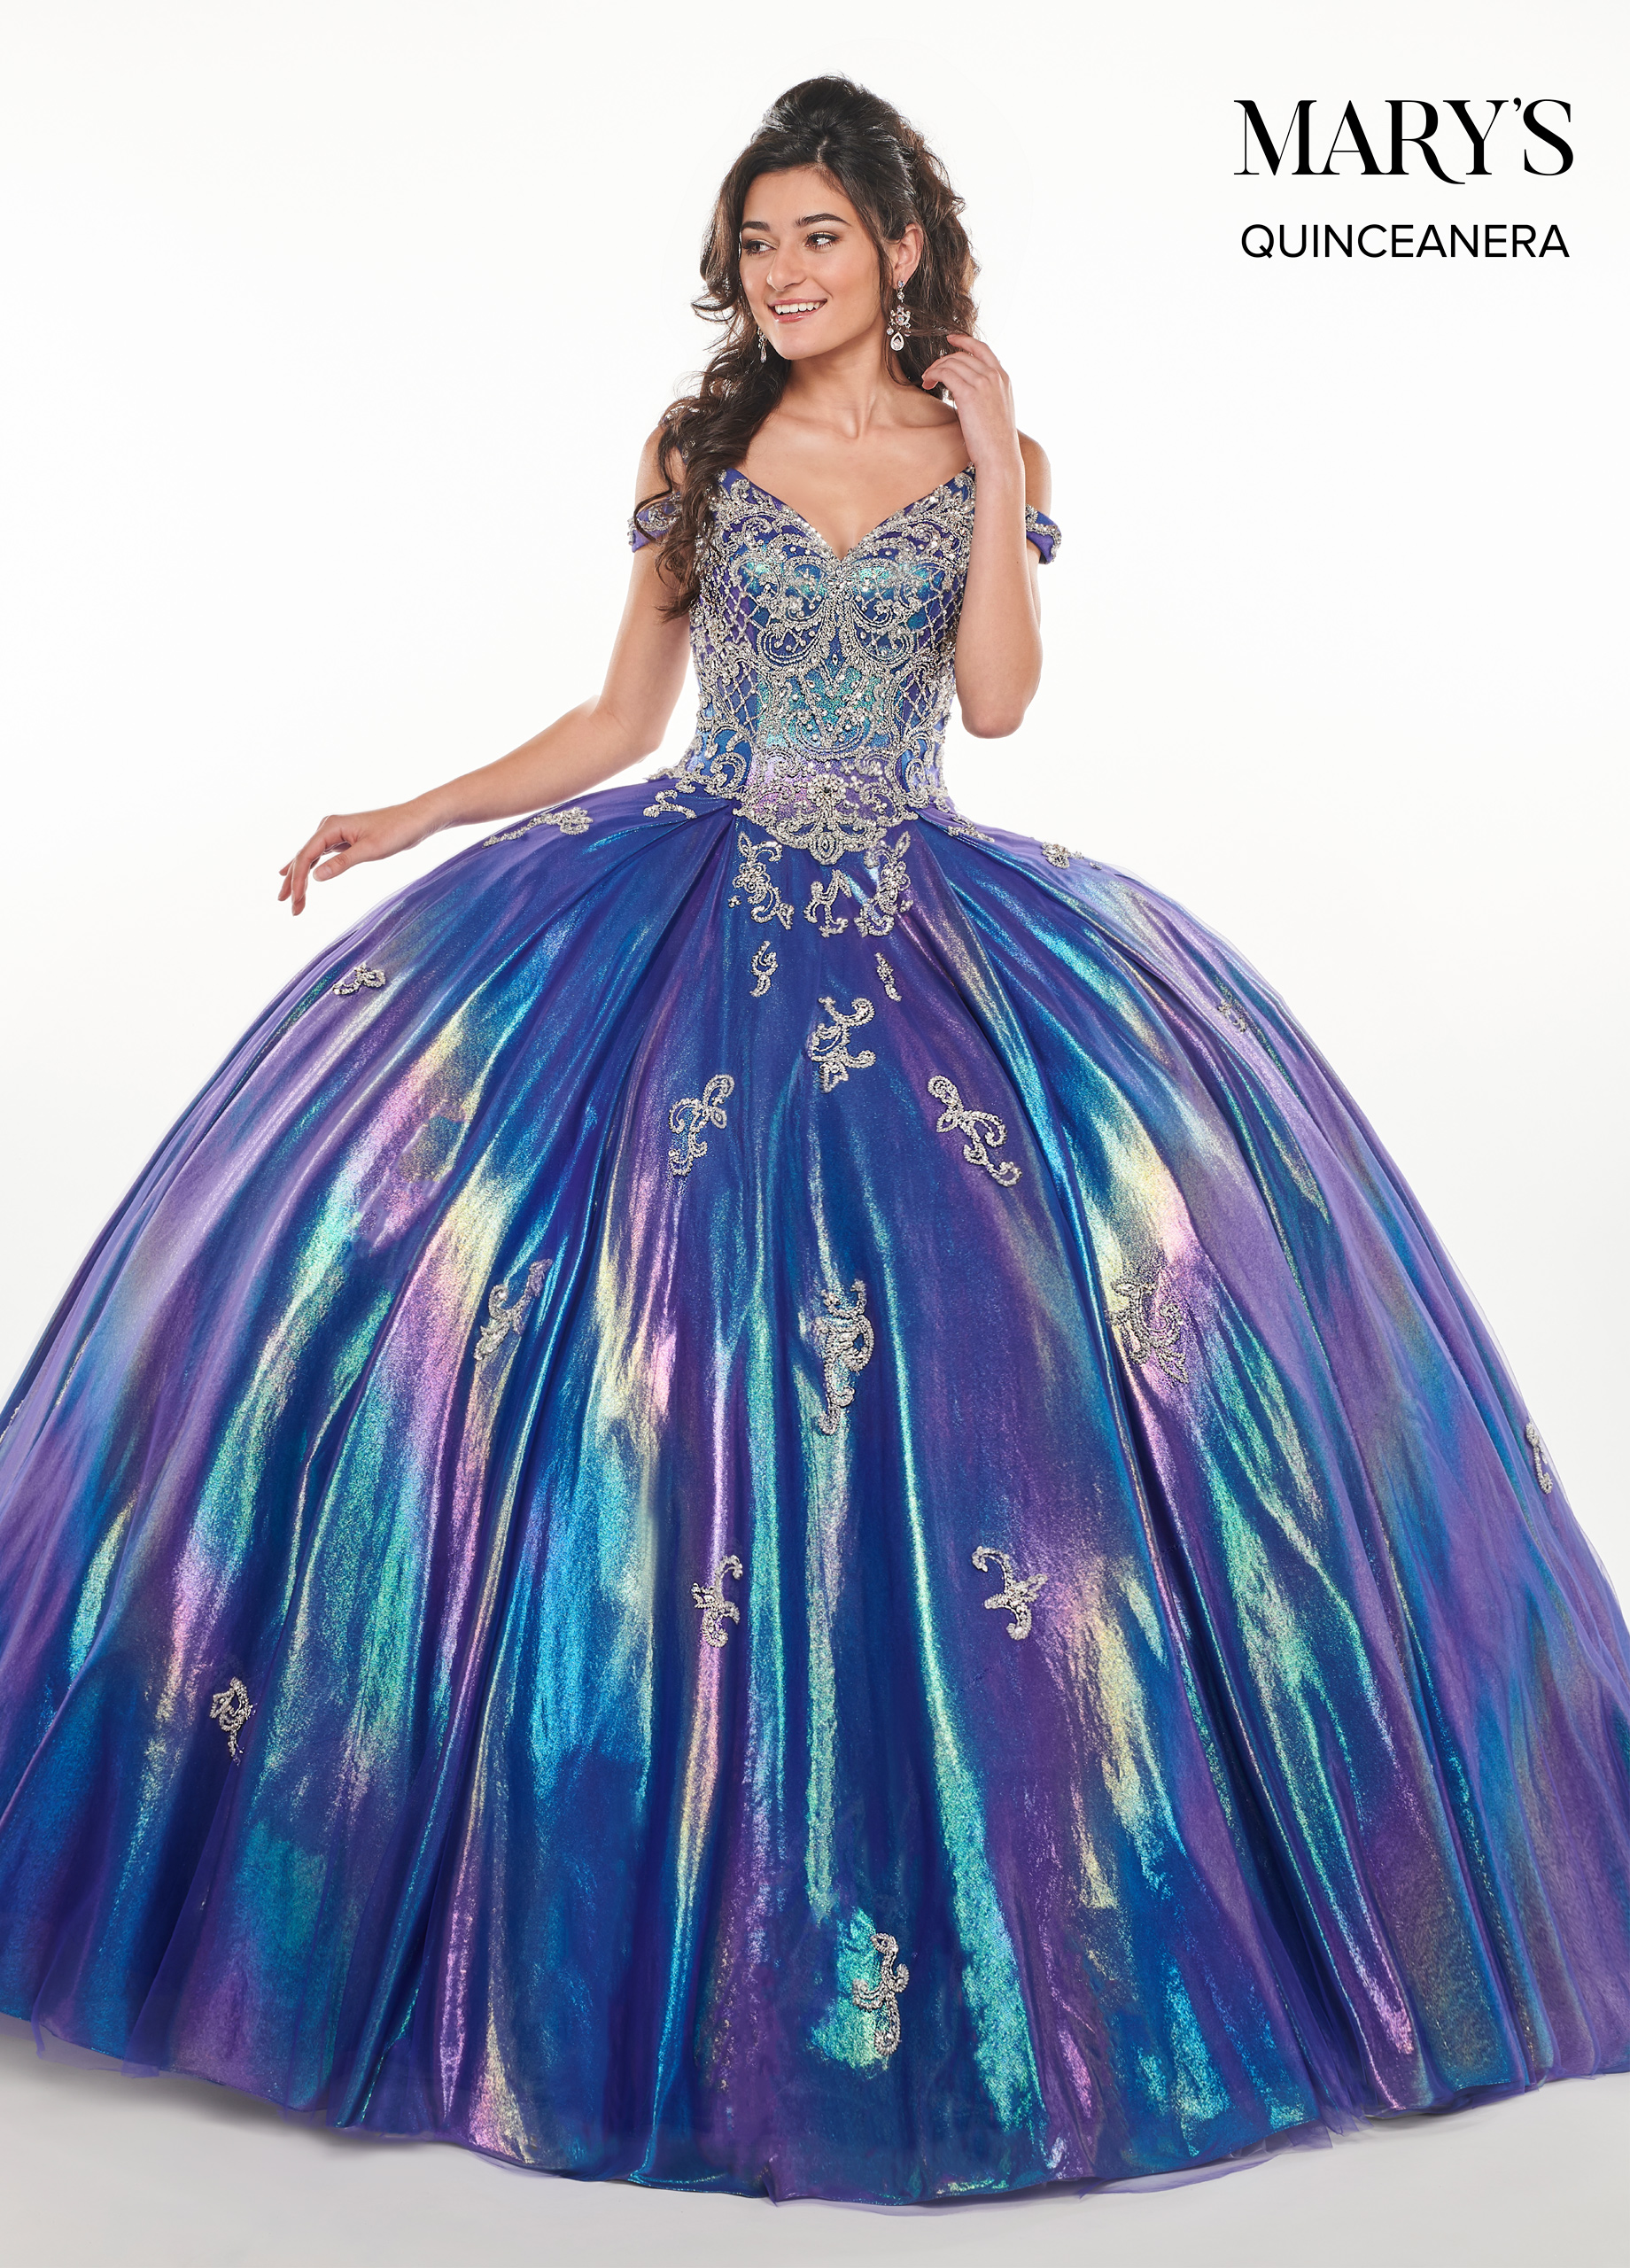 Marys Quinceanera Dresses | Mary's Quinceanera | Style - MQ2070